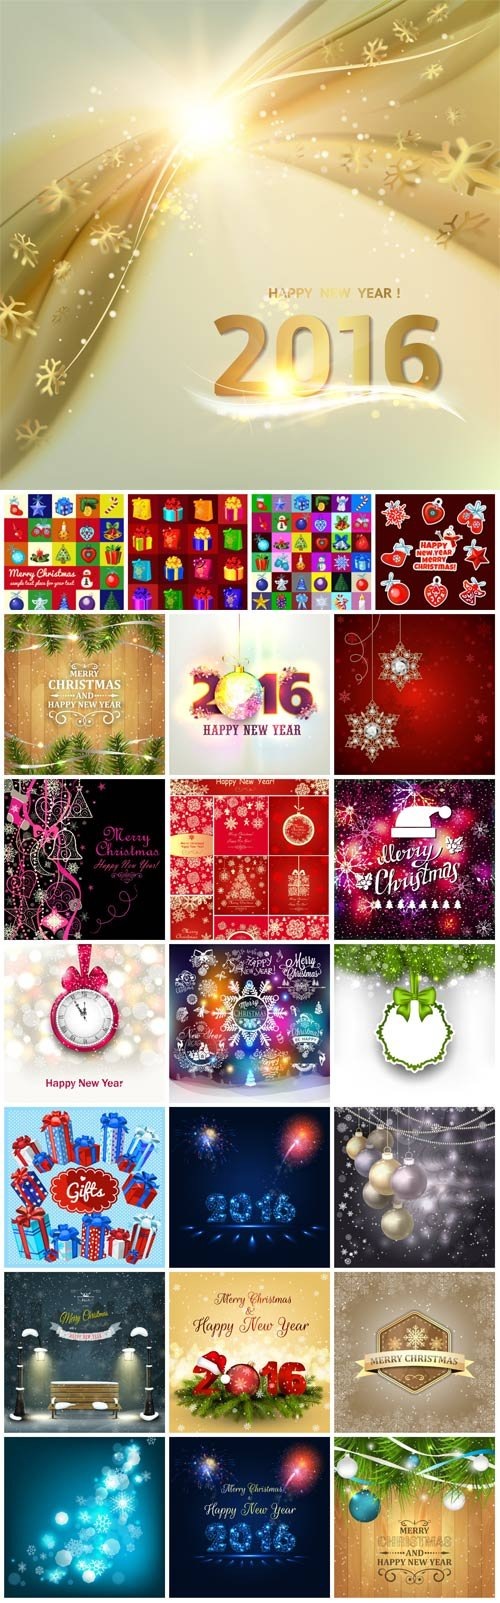 2016 Merry Christmas, New Year, holiday, backgrounds vector